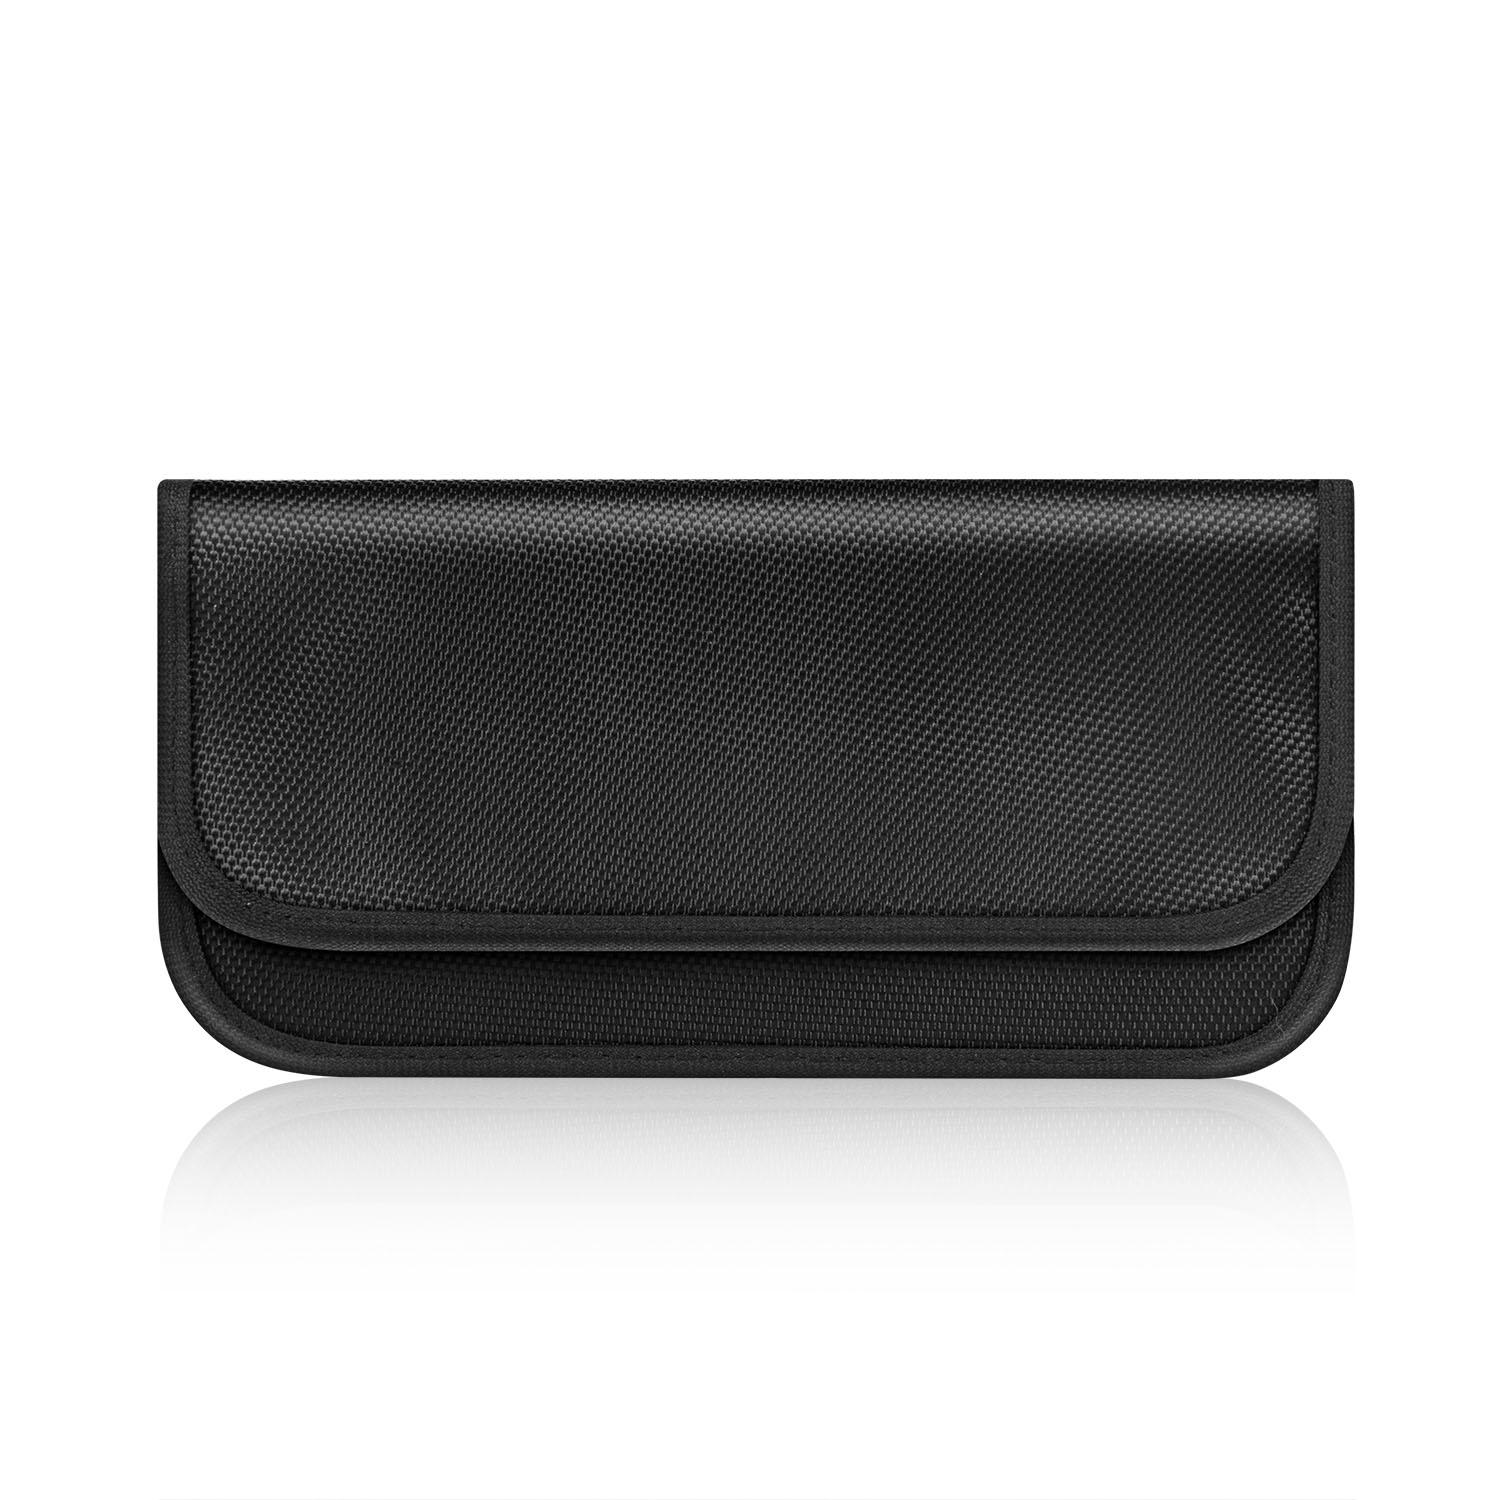 Faraday Bag RFID Signal Blocking Bag Pouch Anti Radiation Wallet Case for Cell Phone Privacy Protection and Car Key FOB